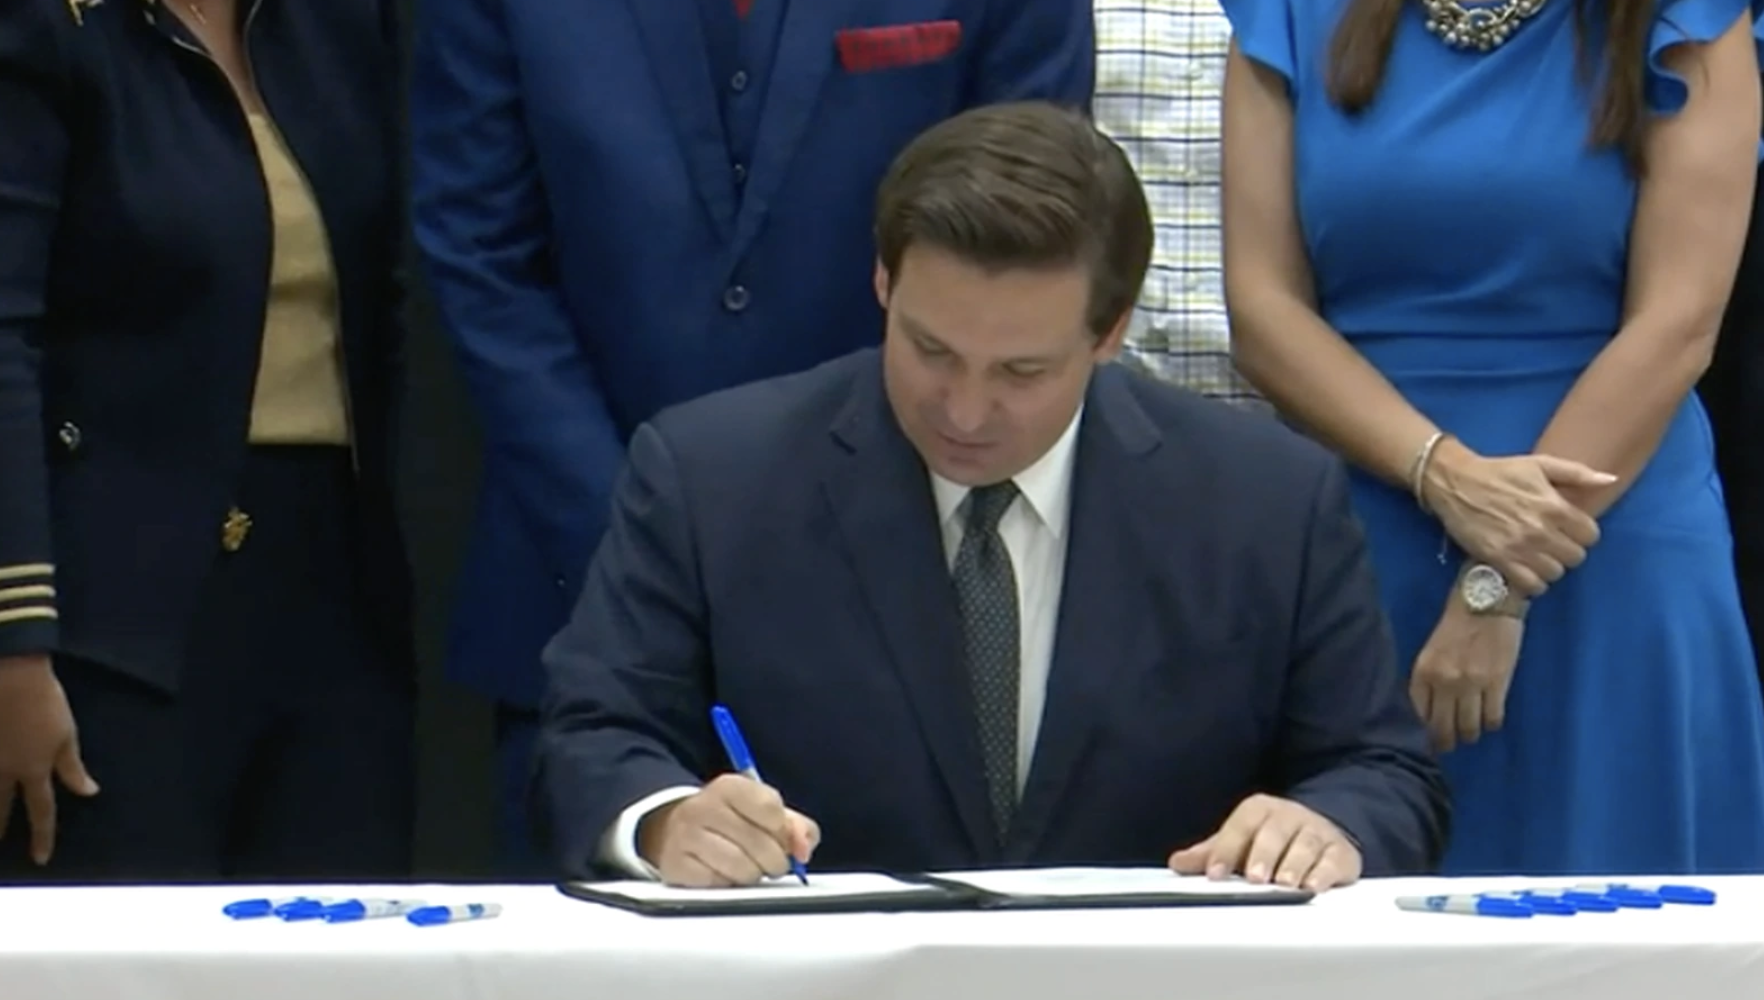 DeSantis signs teacher pay raises into Florida law with bipartisan support